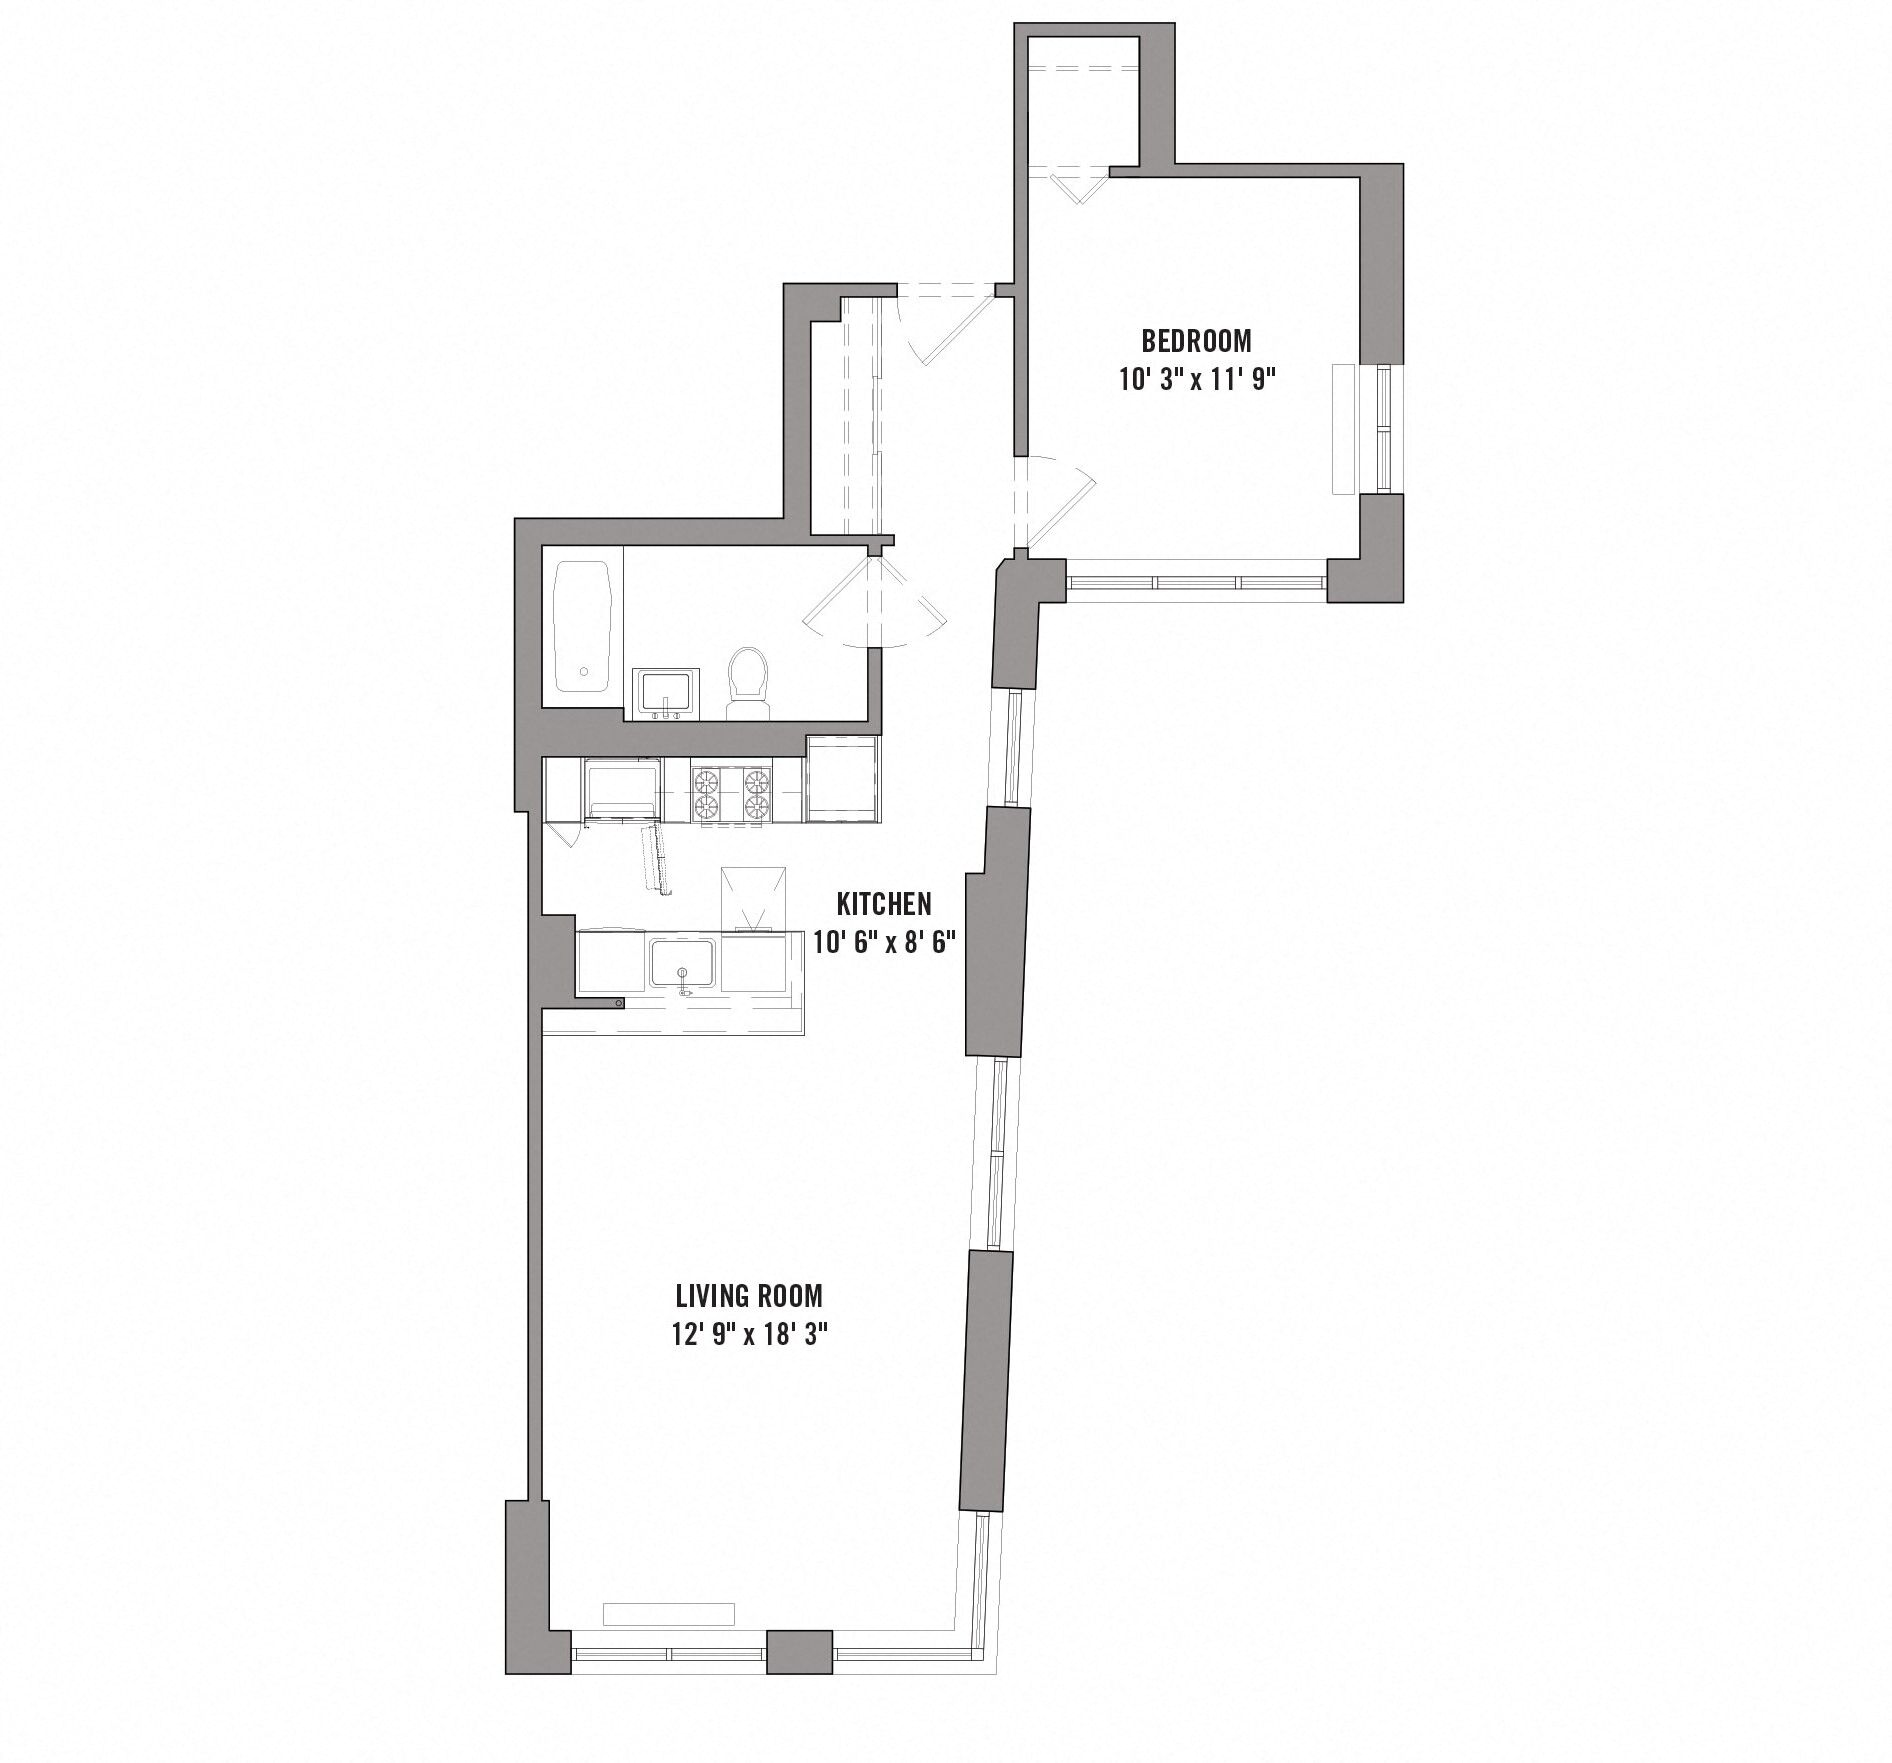 Floor plan diagram for unit A 16 PH. 1 bedroom, 1 bathroom, kitchen, and living room.